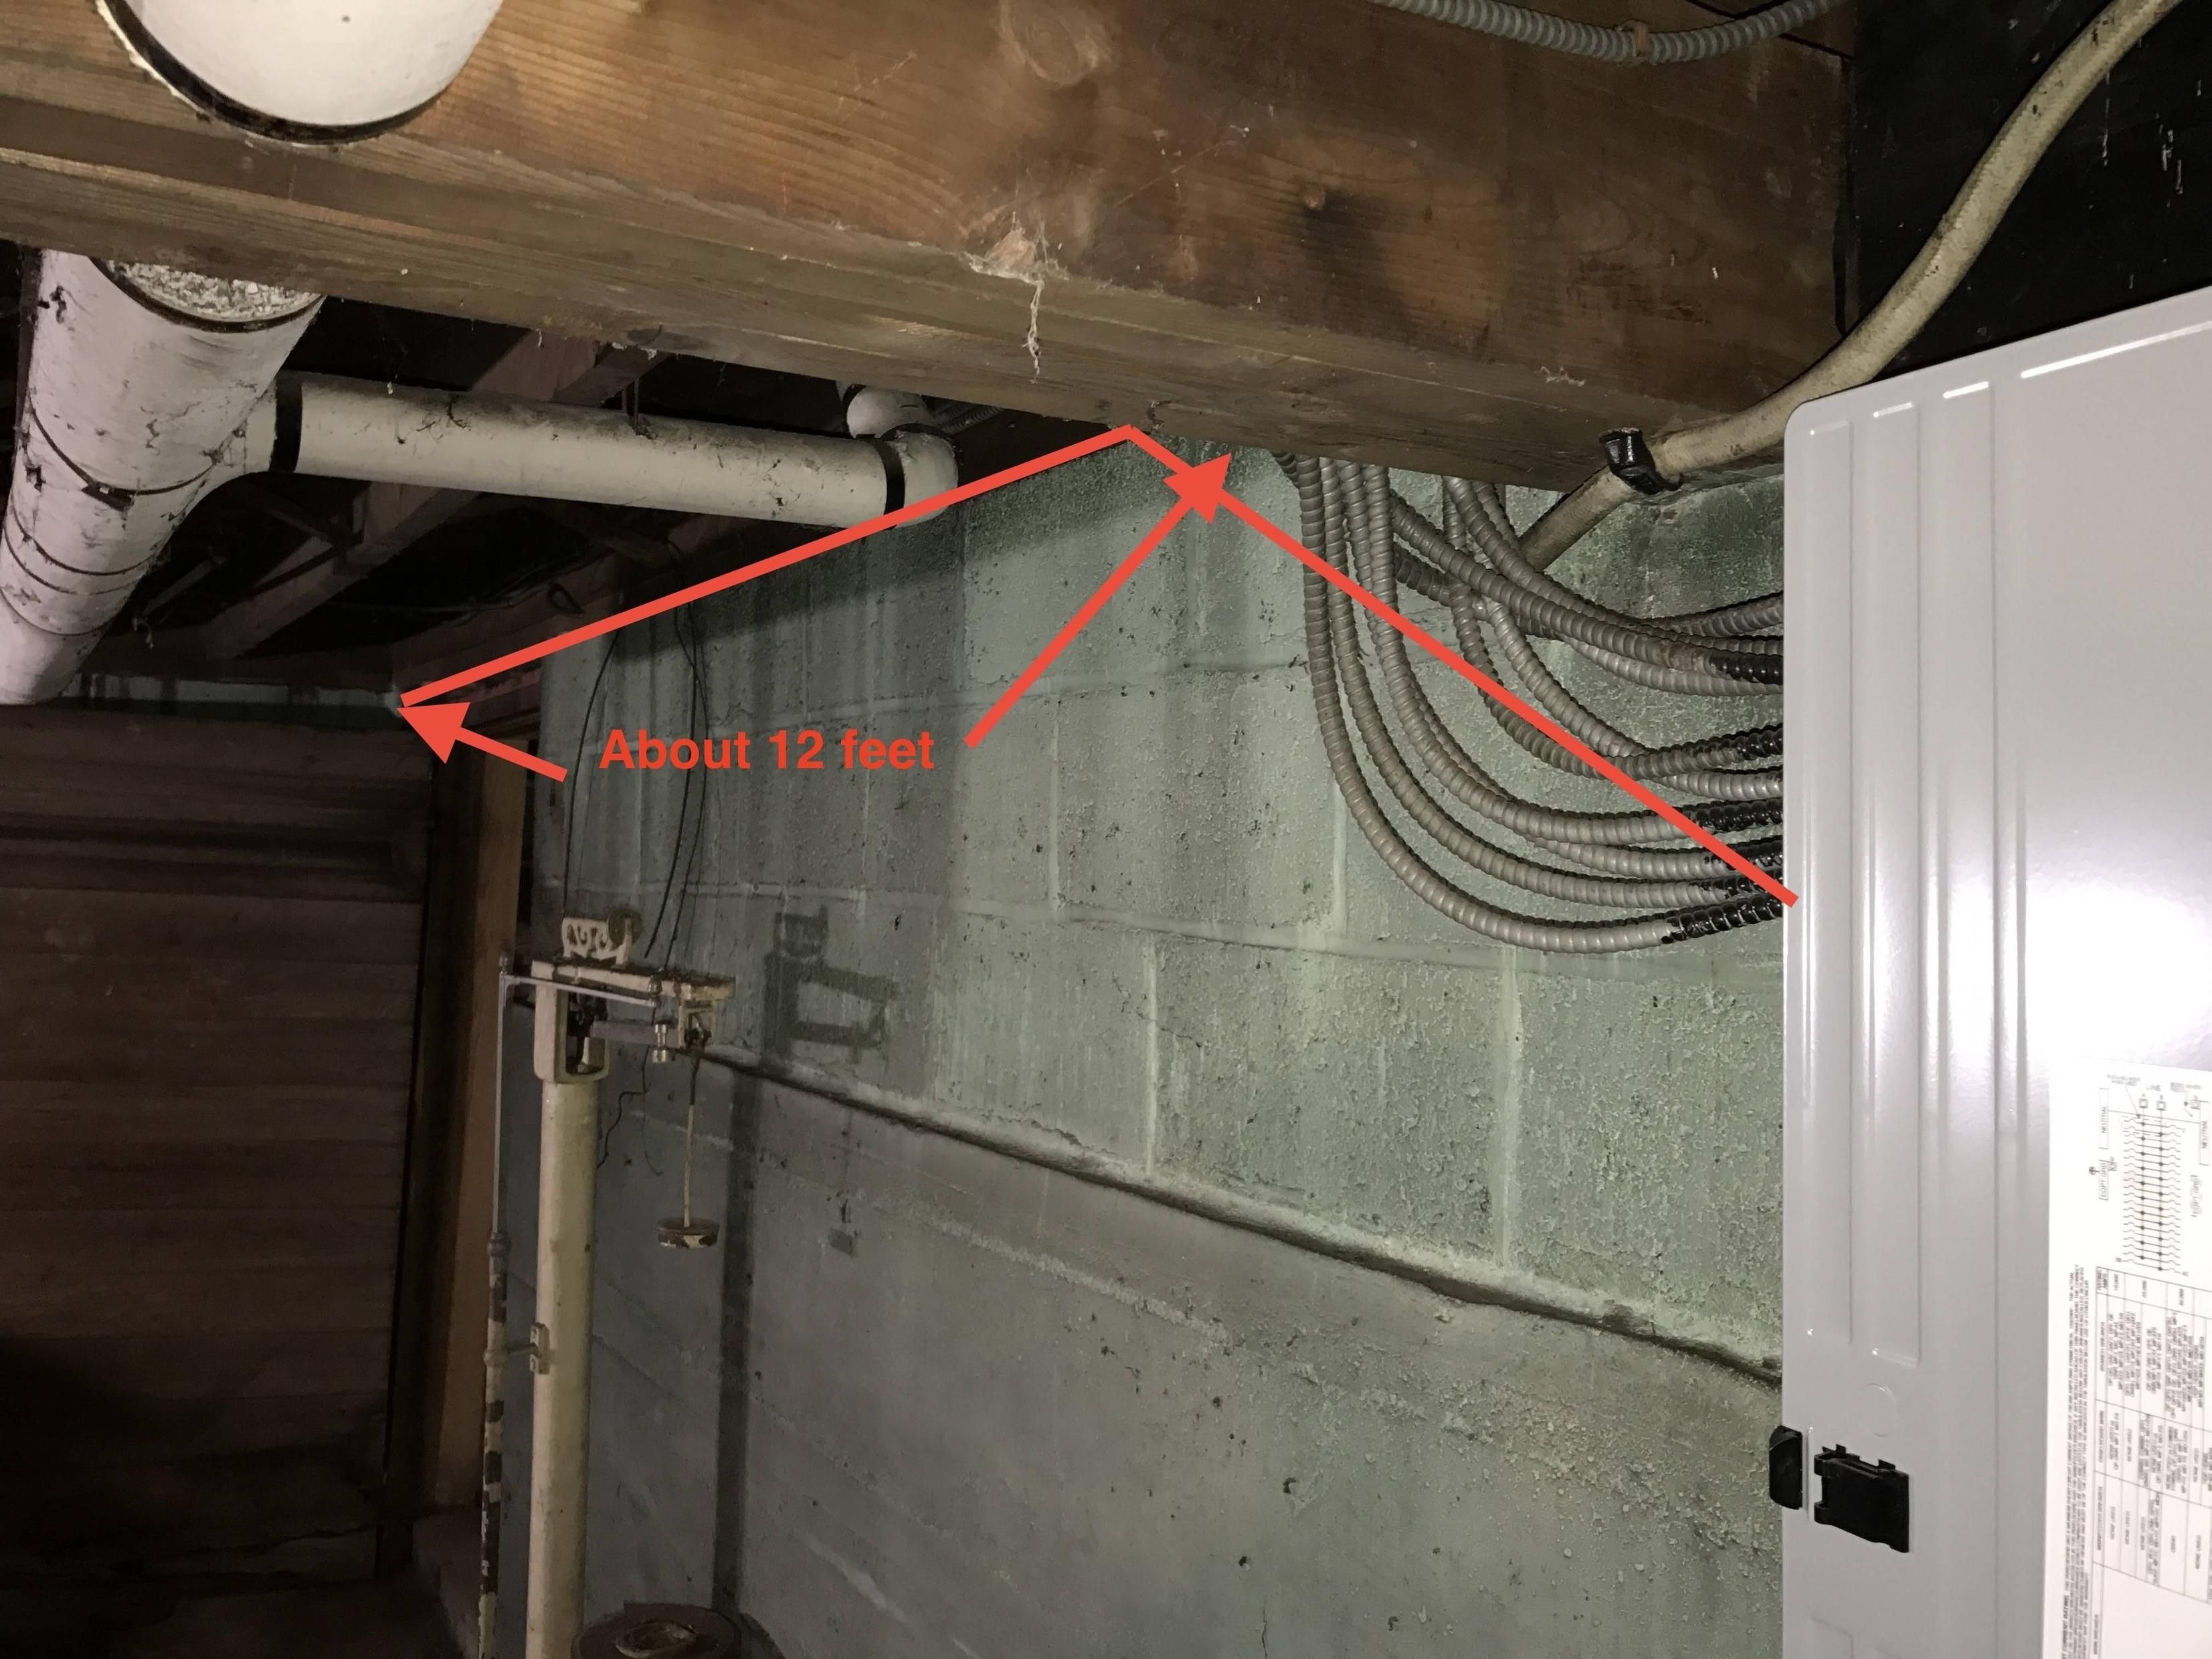 electrical wiring basement walls http dreamtree us pinterest rh pinterest com Wiring a Basement Room basement wiring concrete walls